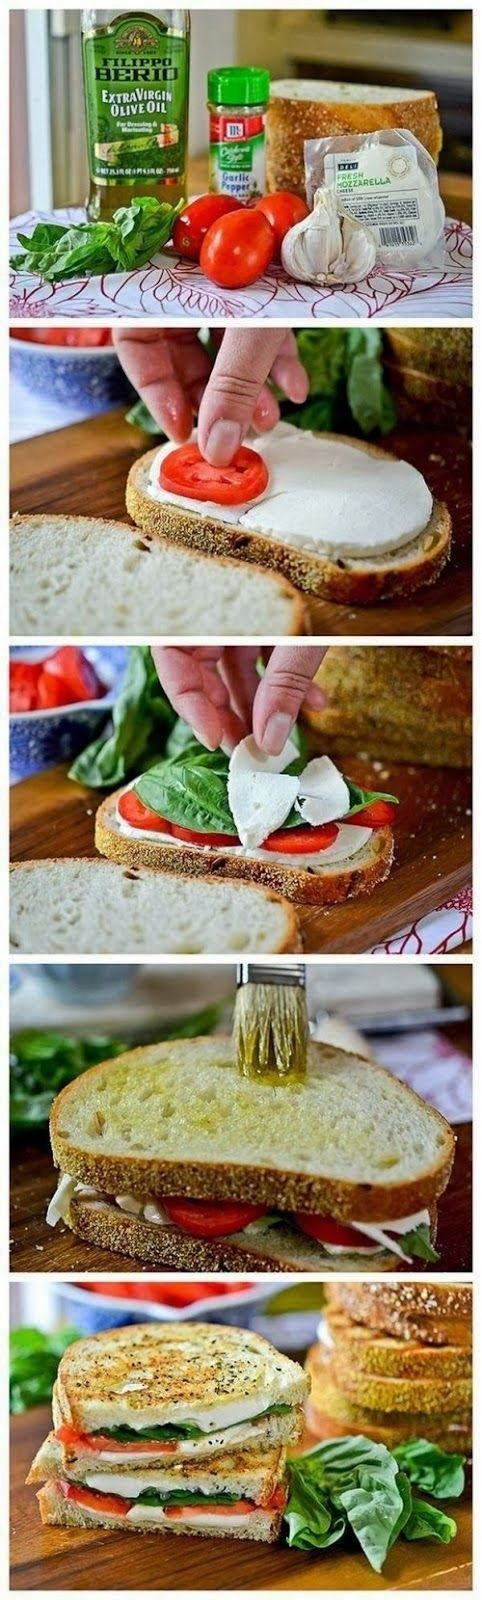 Grilled Margherita Sandwiches - These are so, so good and really simple sandwiches to make! Click through for recipe!